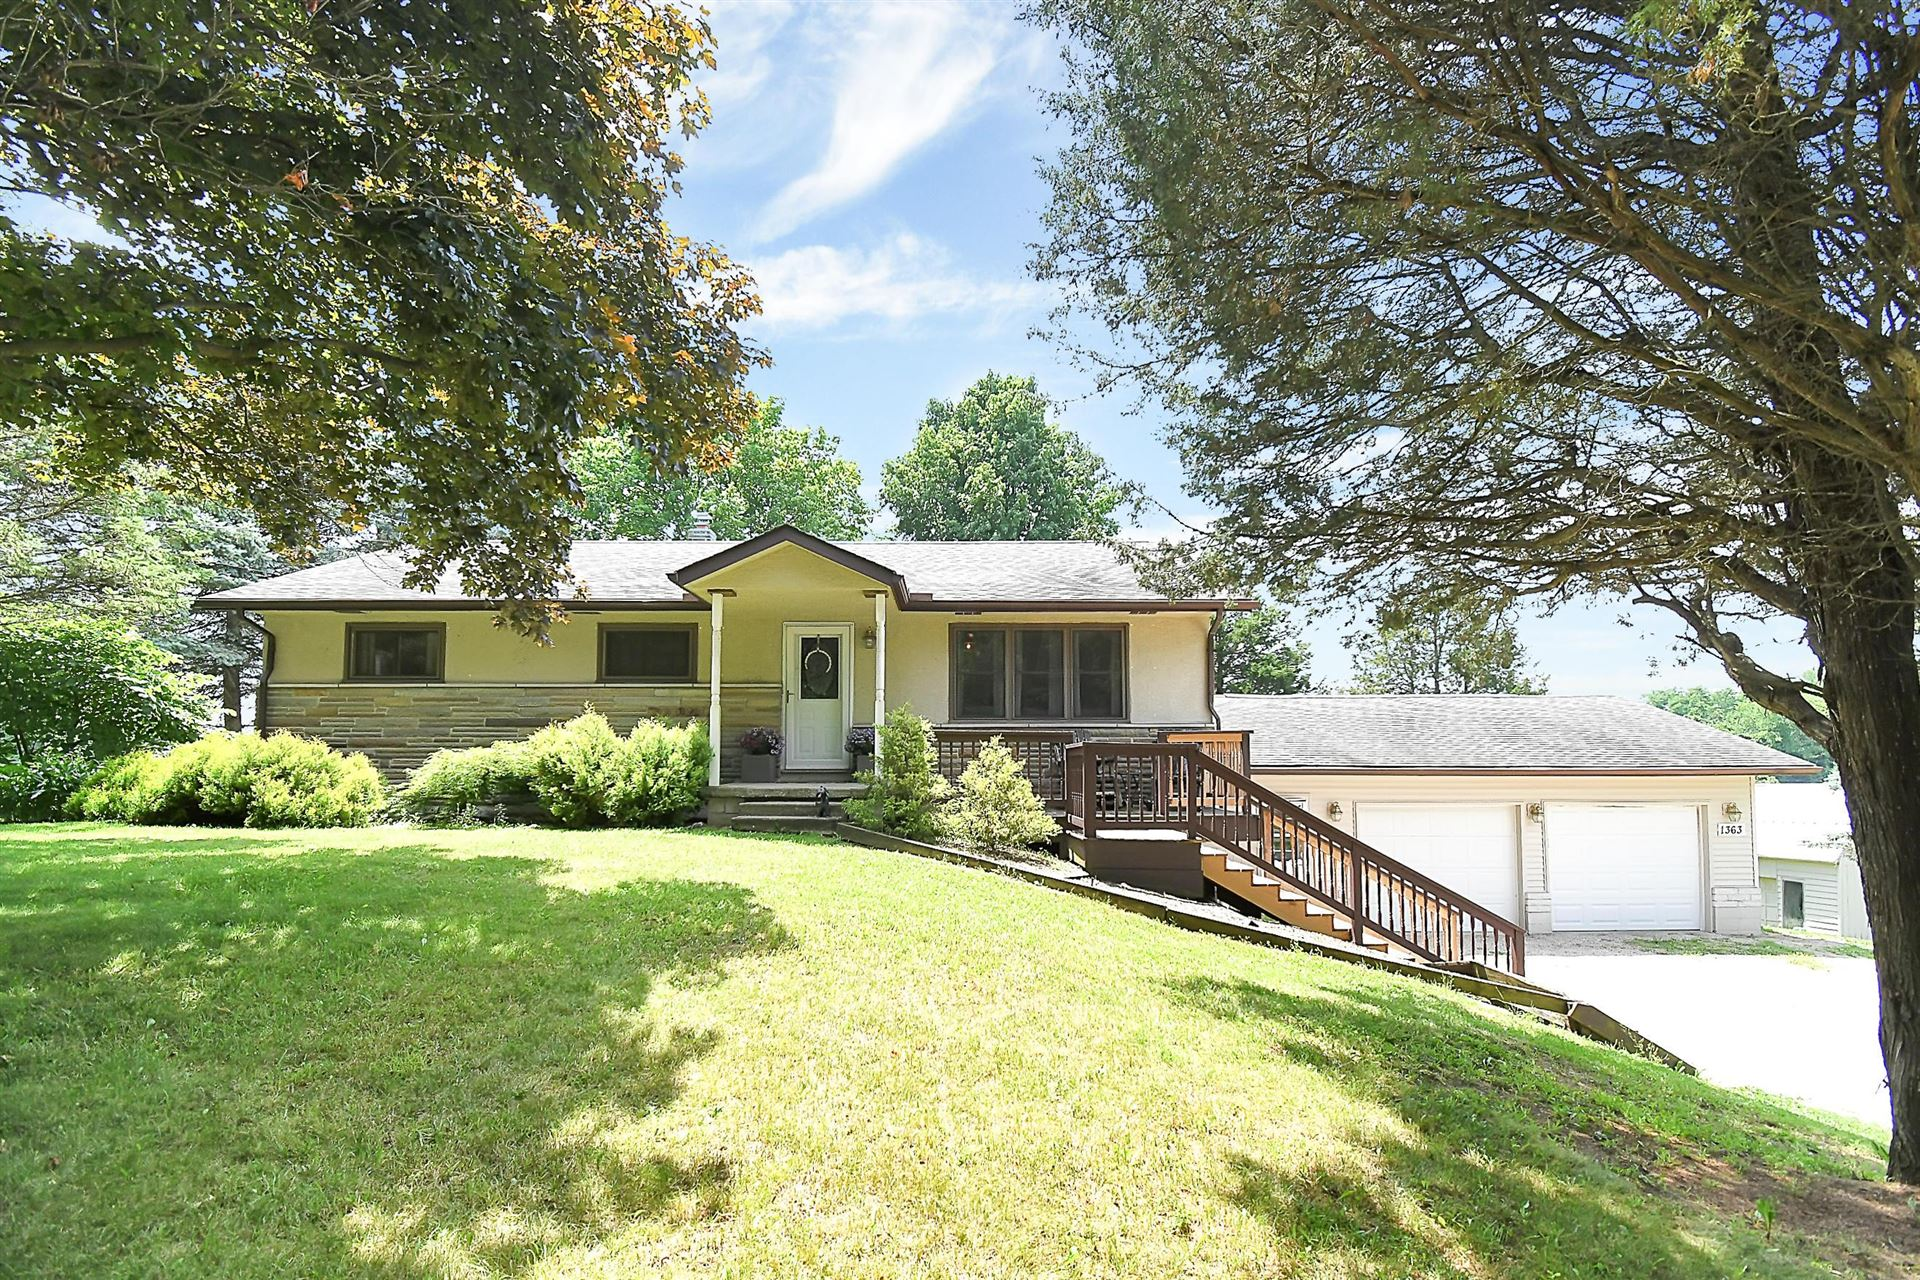 Photo of 1363 Buttermilk Hill Road, Delaware, OH 43015 (MLS # 221028297)